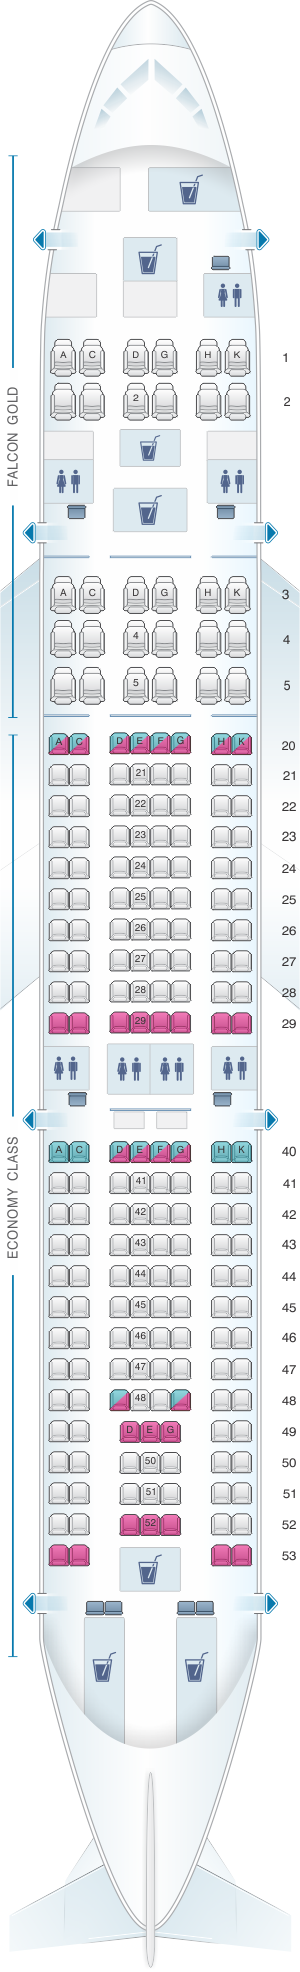 Seat map for Gulf Air Airbus A330 200 B